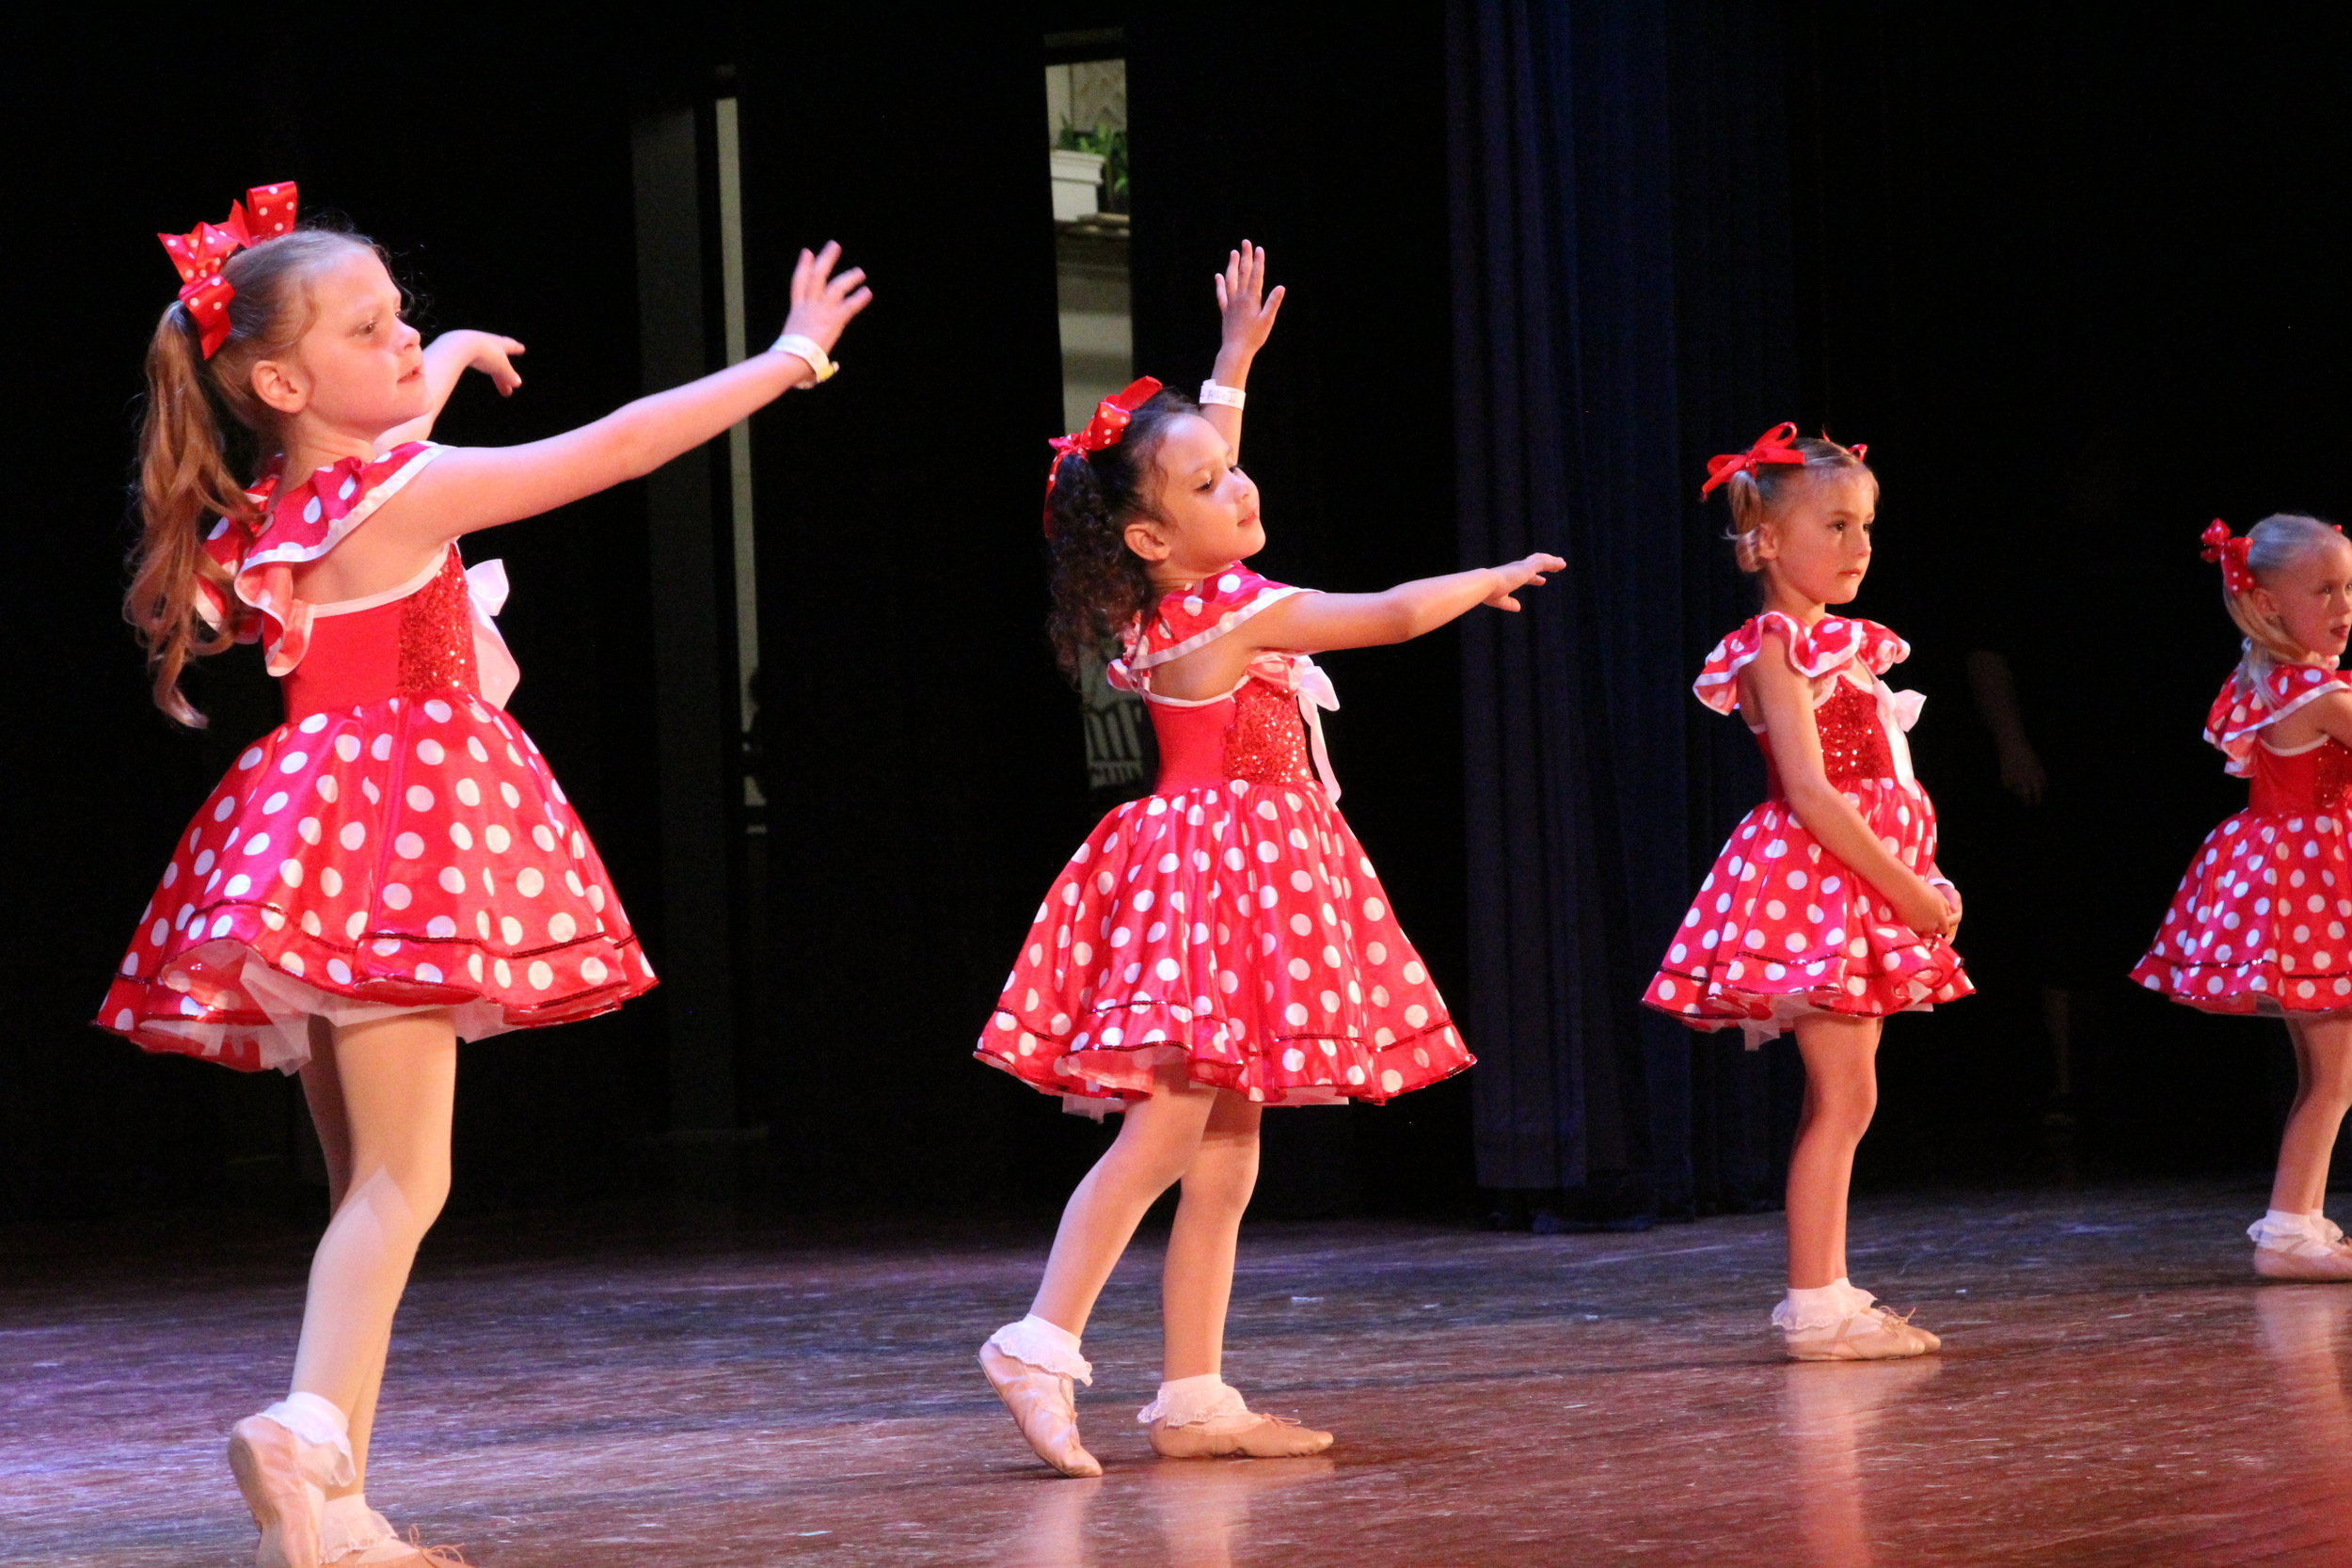 Mini Dance Bugs - Ages: 4-5Our younger dancers will be introduced to the basic concepts of tap and ballet in these playful classes. Students will learn techniques through simple songs, creative movement and rhythms.